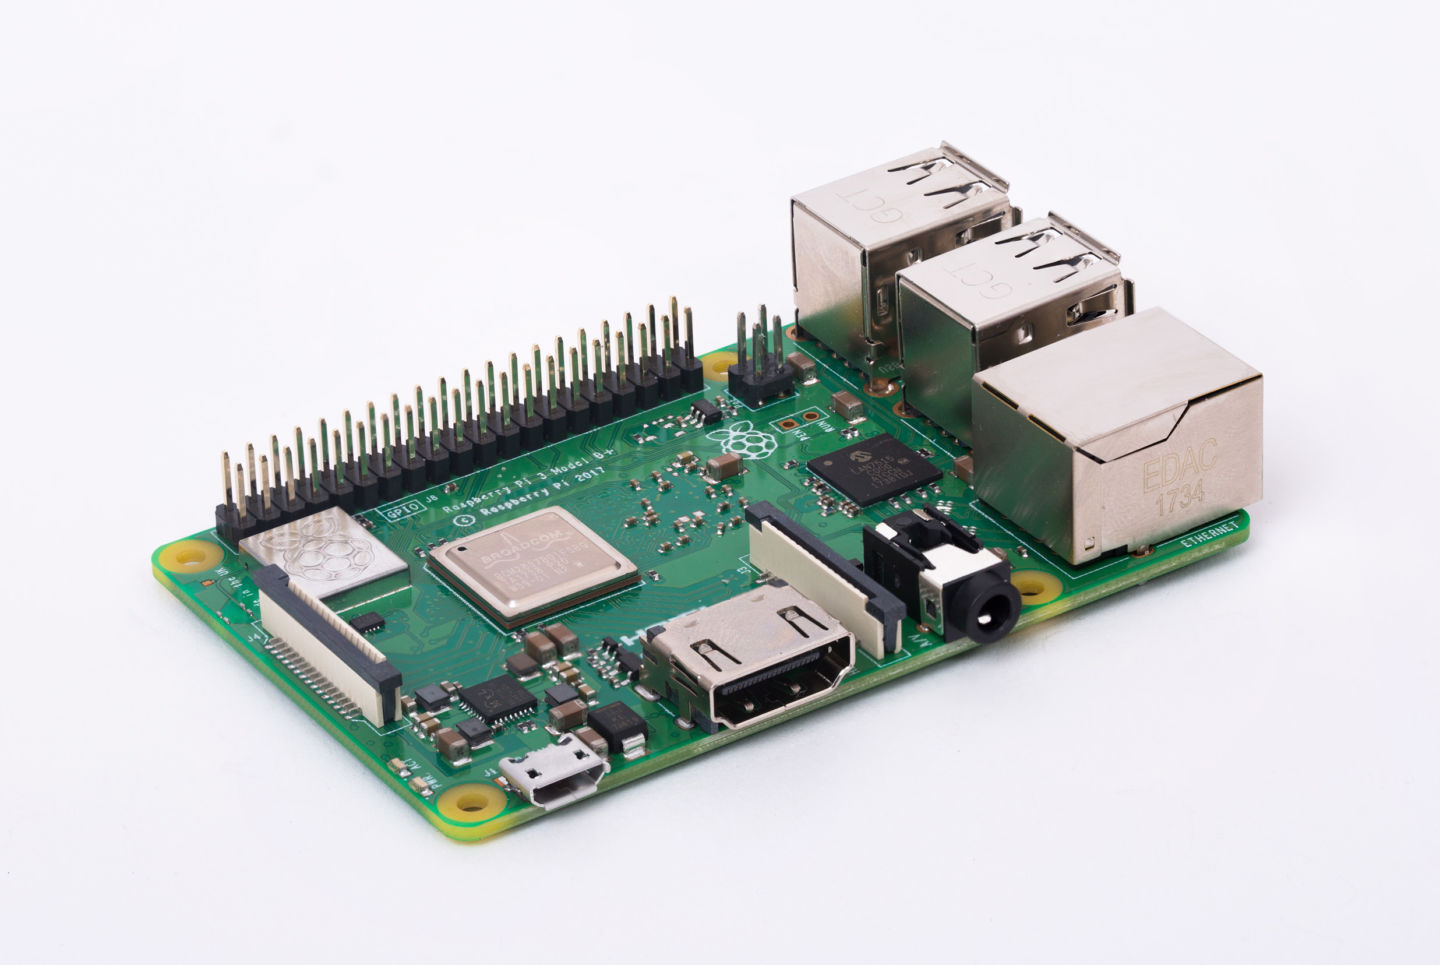 Raspberry Pi Geekmusthave On Off Power Controller Up Your With Latching The B Has Same Form Factor And Dimensions As 2 3 Making It A Drop In Replacement But Better Processor Connectivity